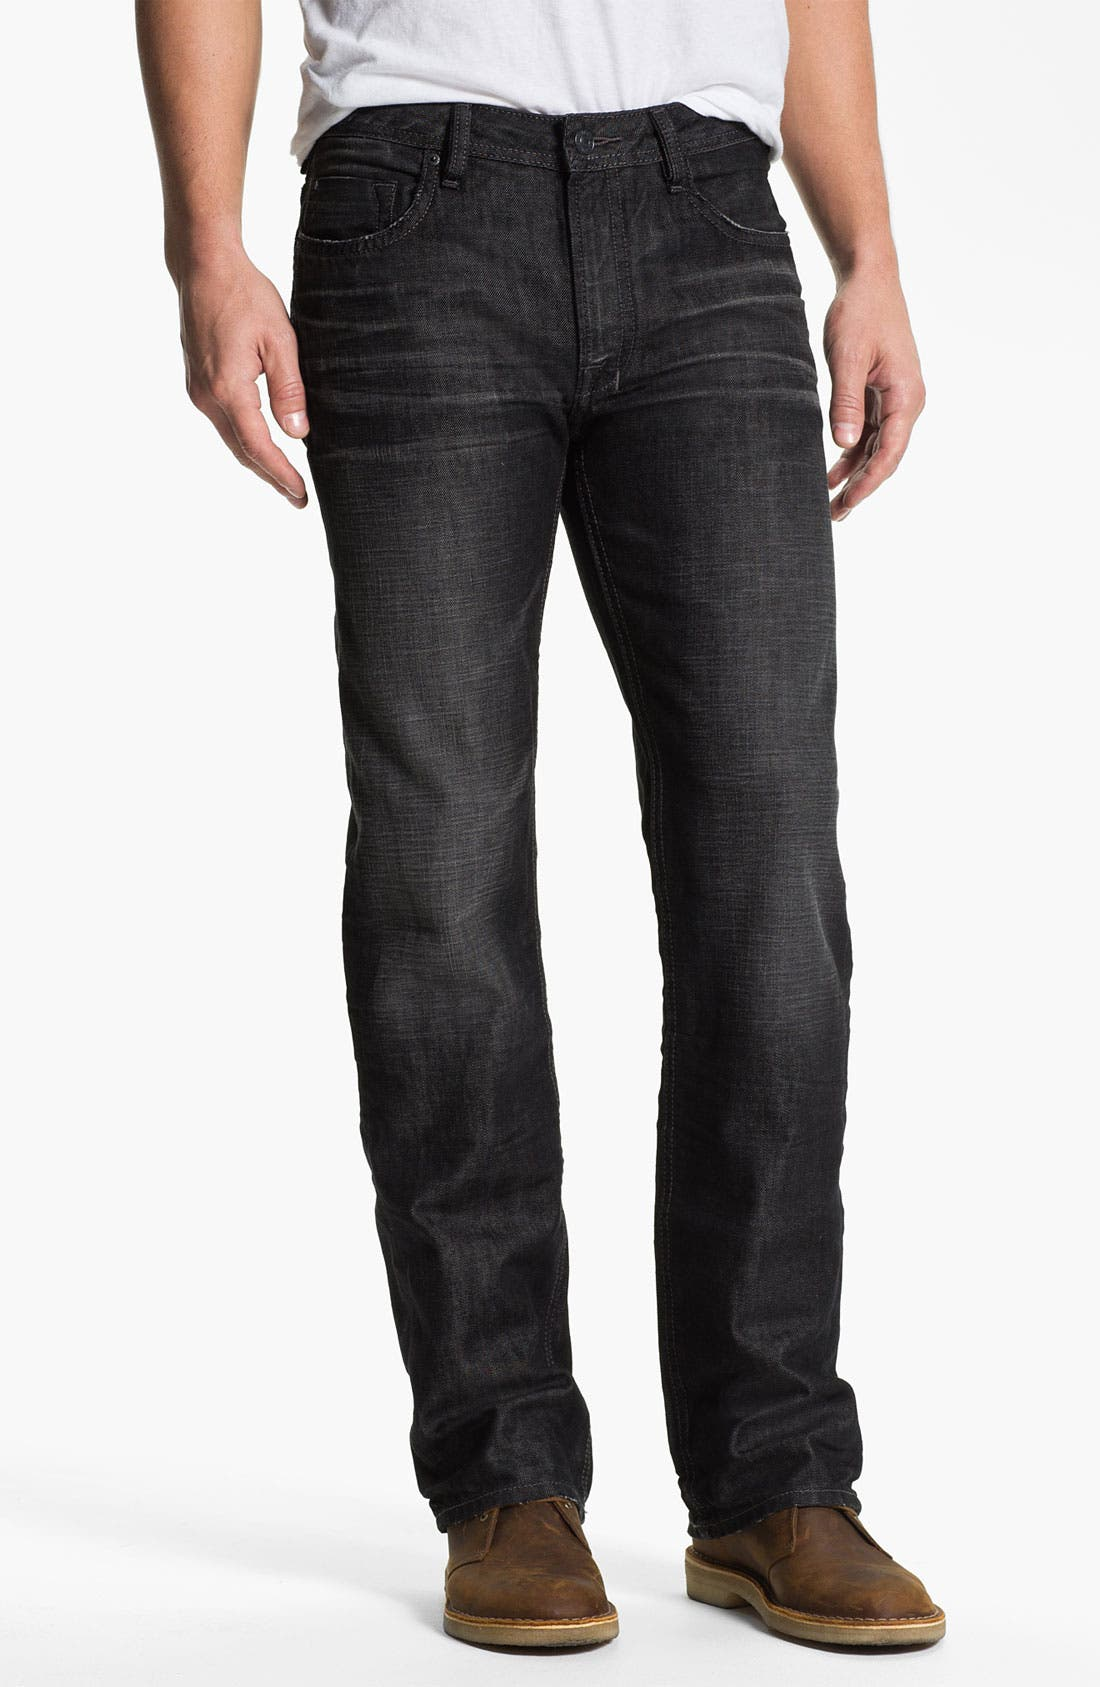 Main Image - Buffalo Jeans 'Driven' Straight Leg Jeans (Dark/Washed)